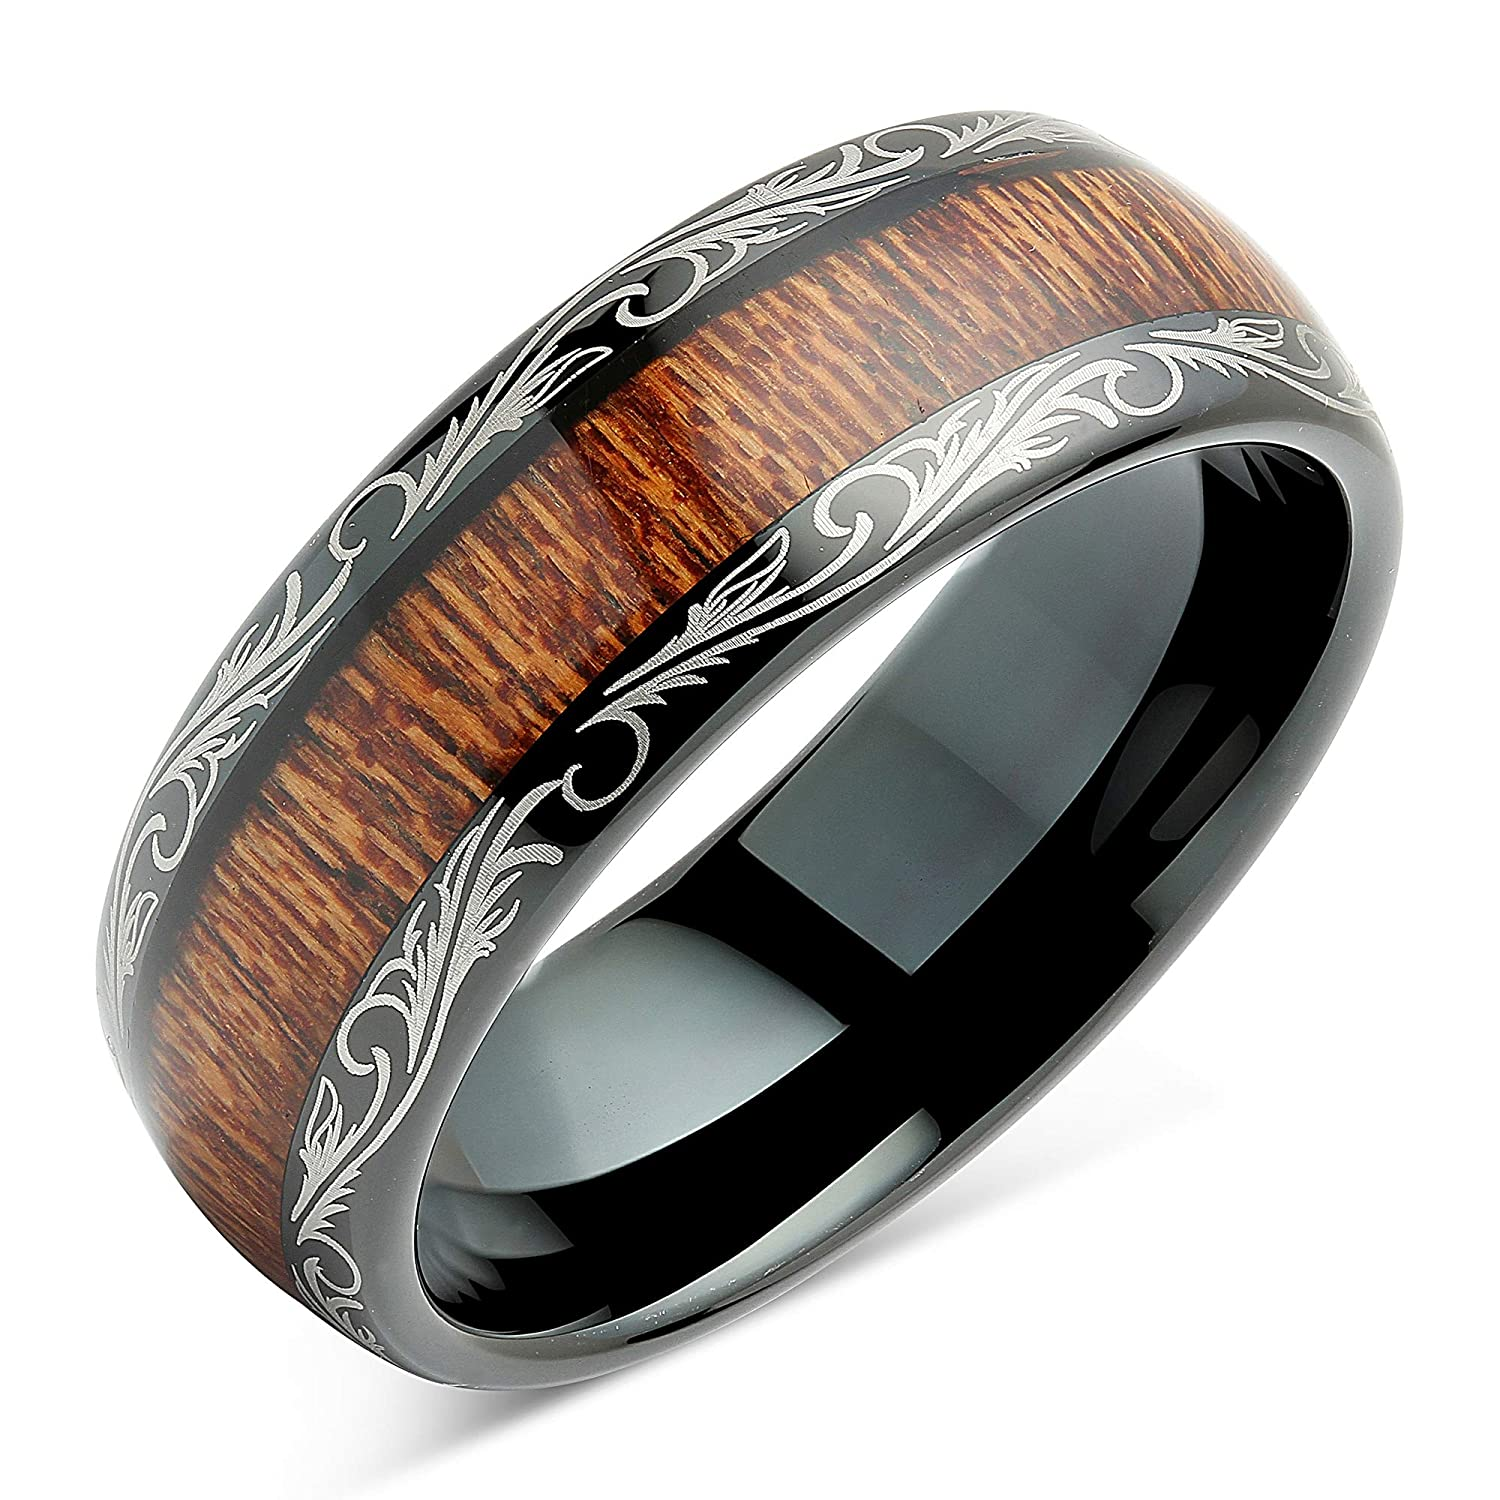 Impartial Titanium Black Rubber Flat 8mm Brushed Wedding Ring Band Size 6.50 Type Of Jewelry & Watches Bridal & Wedding Party Jewelry